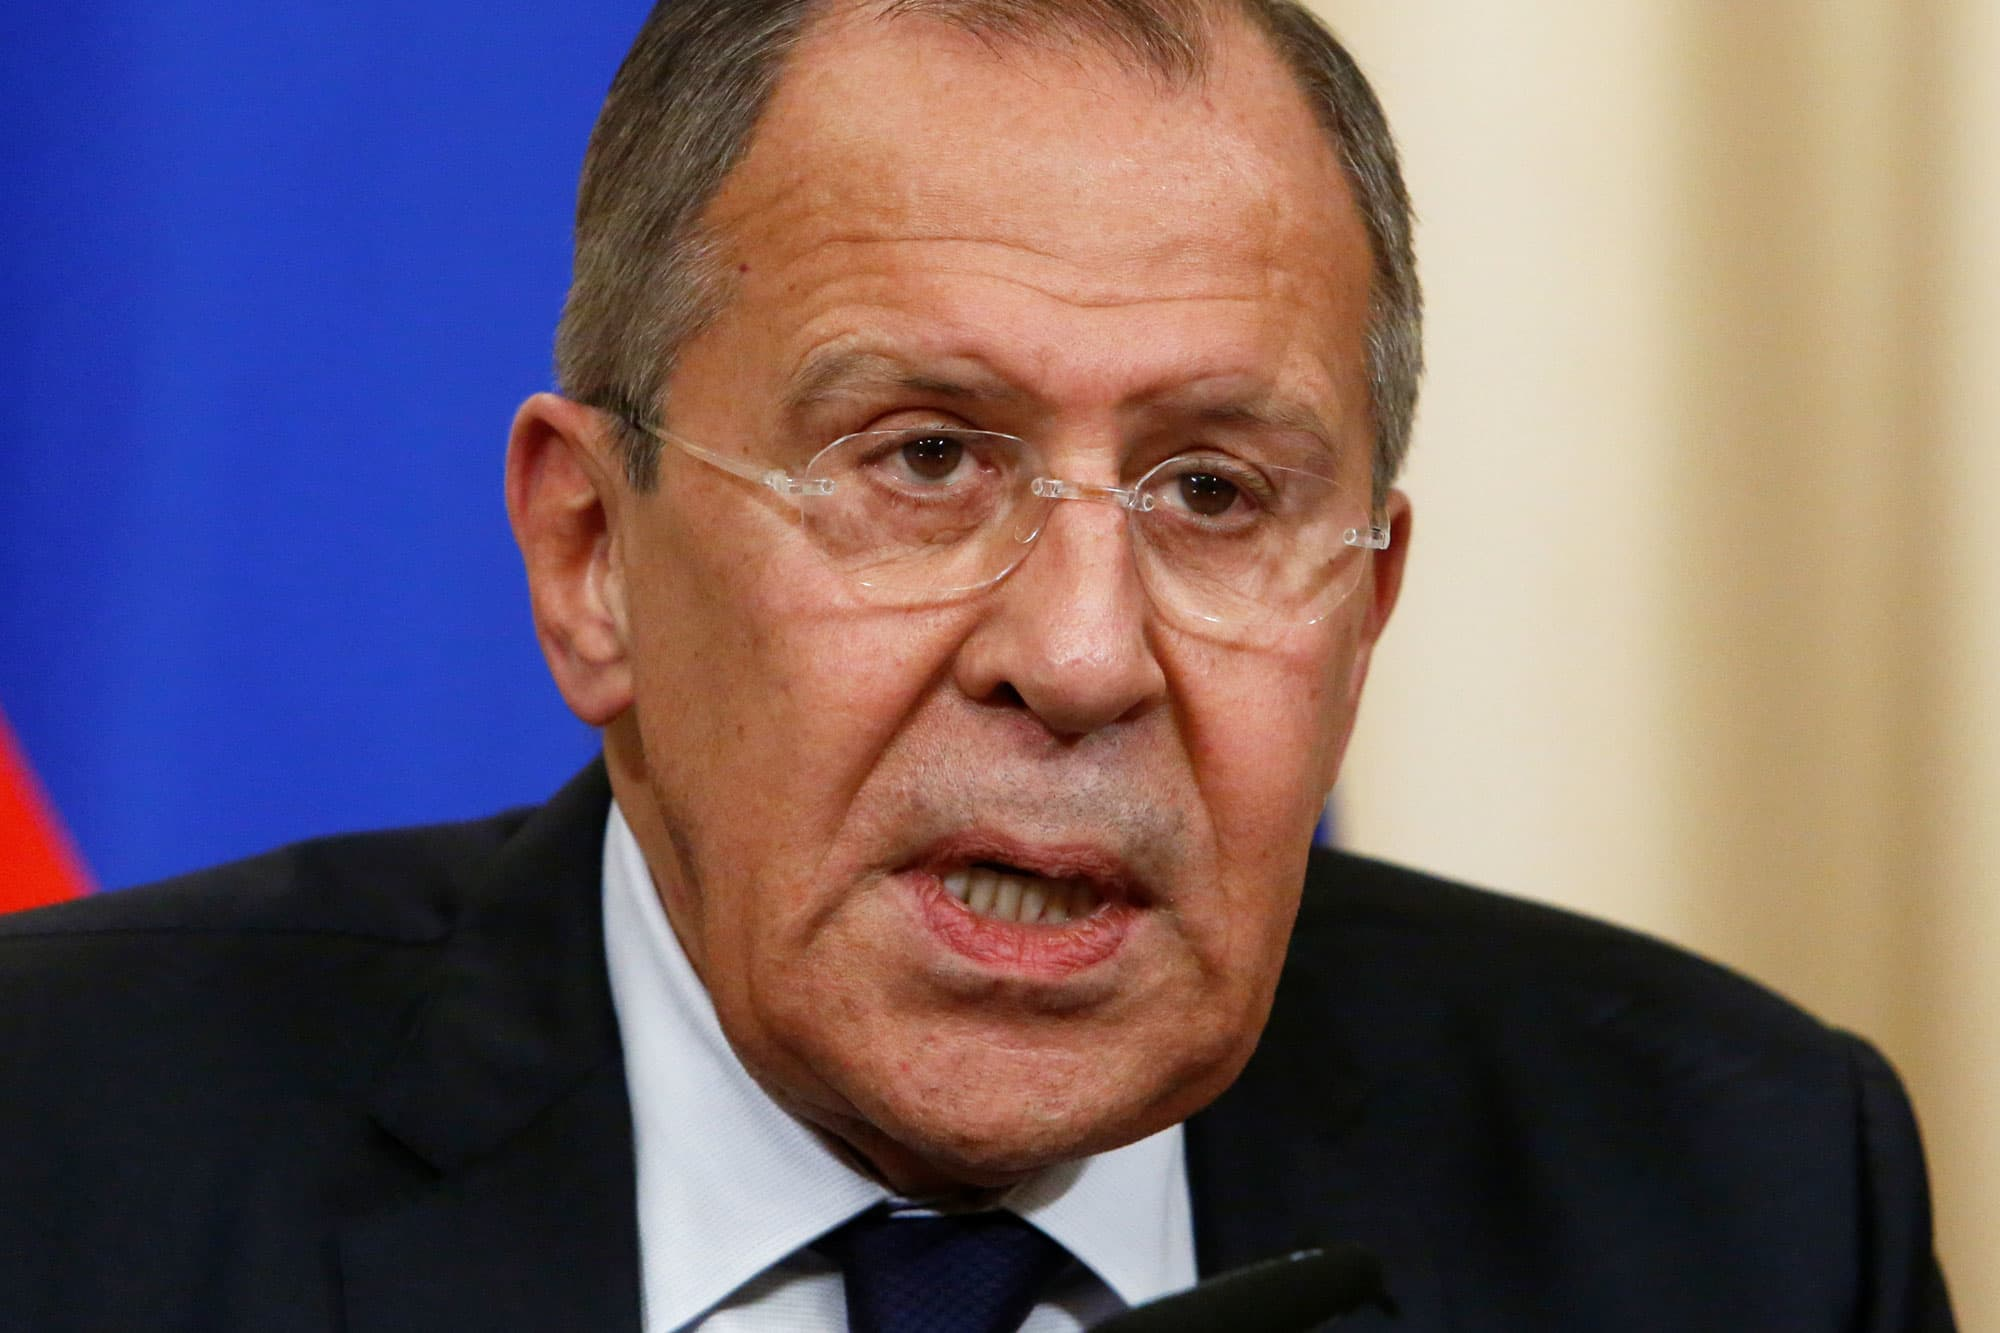 Russia's Lavrov says Nord Stream 2 will be launched despite sanctions